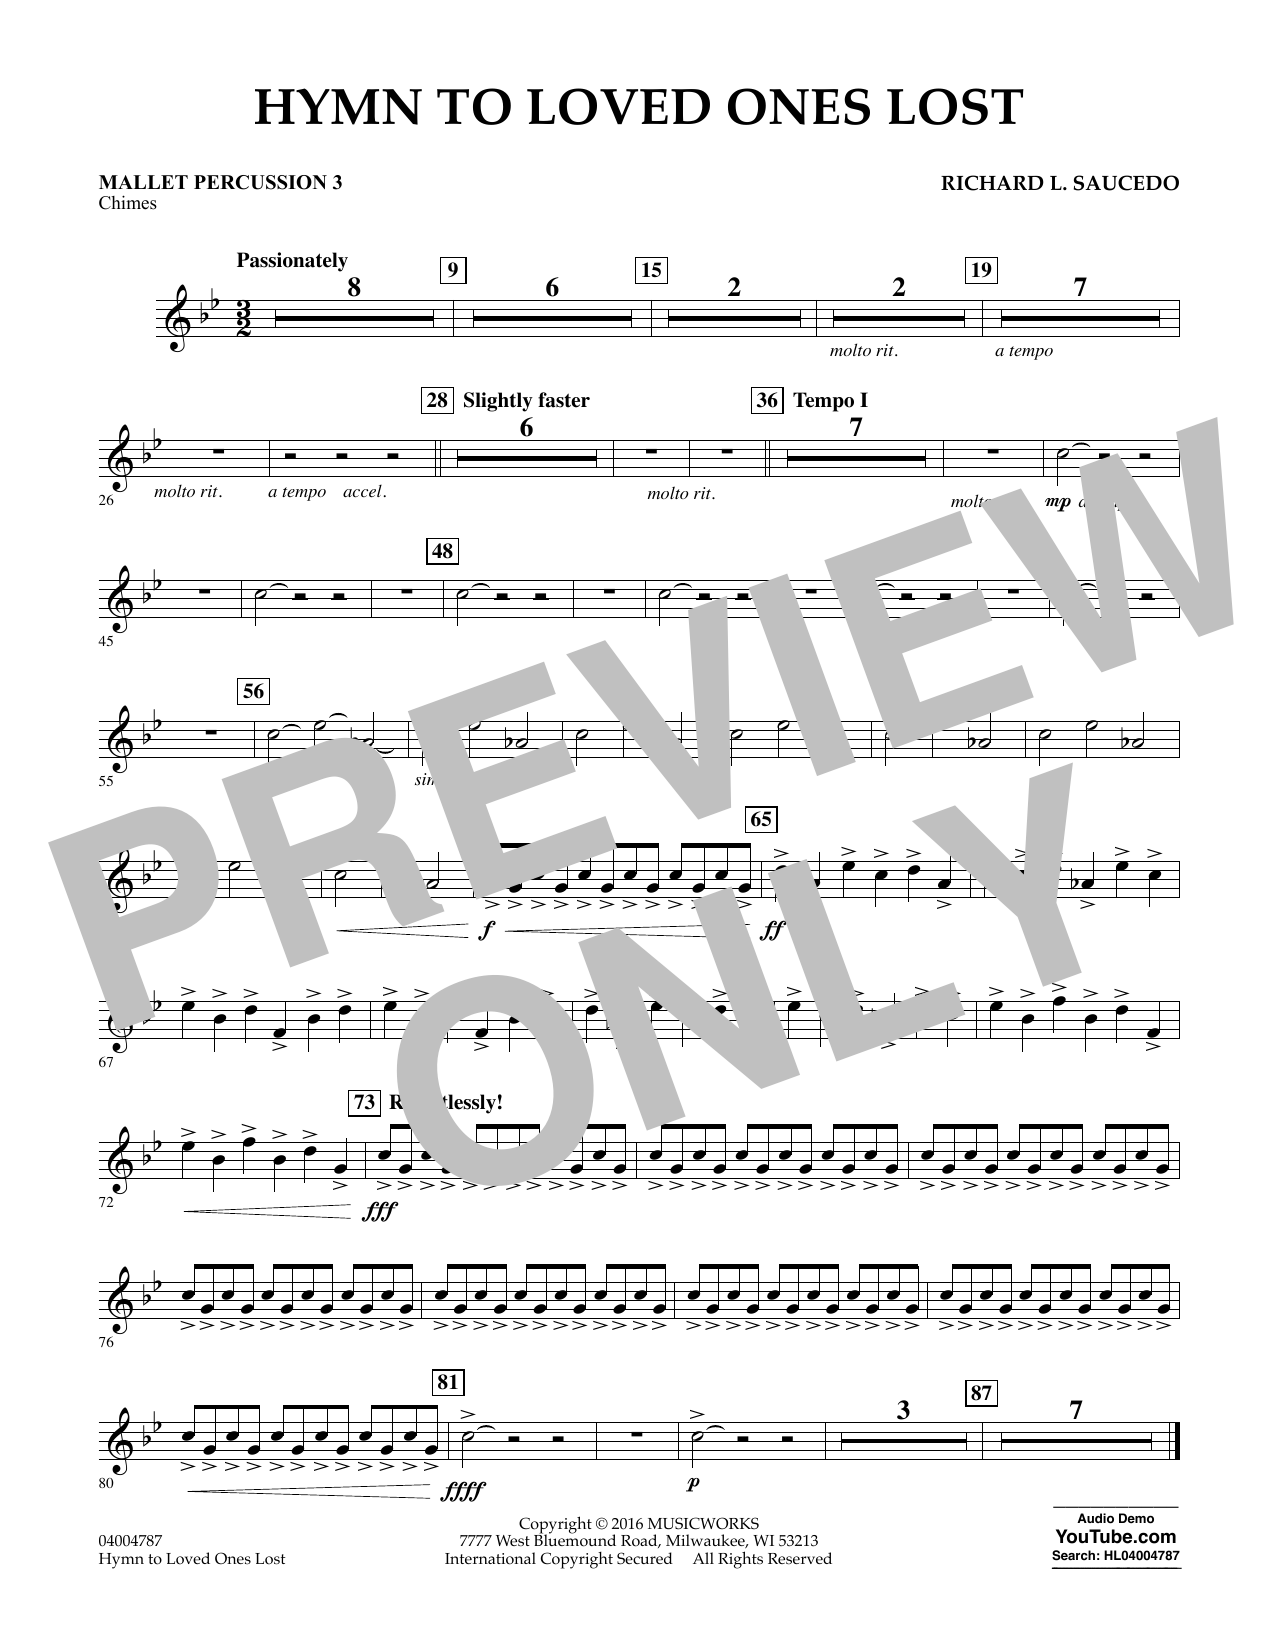 Hymn to Loved Ones Lost - Mallet Percussion 3 (Concert Band)